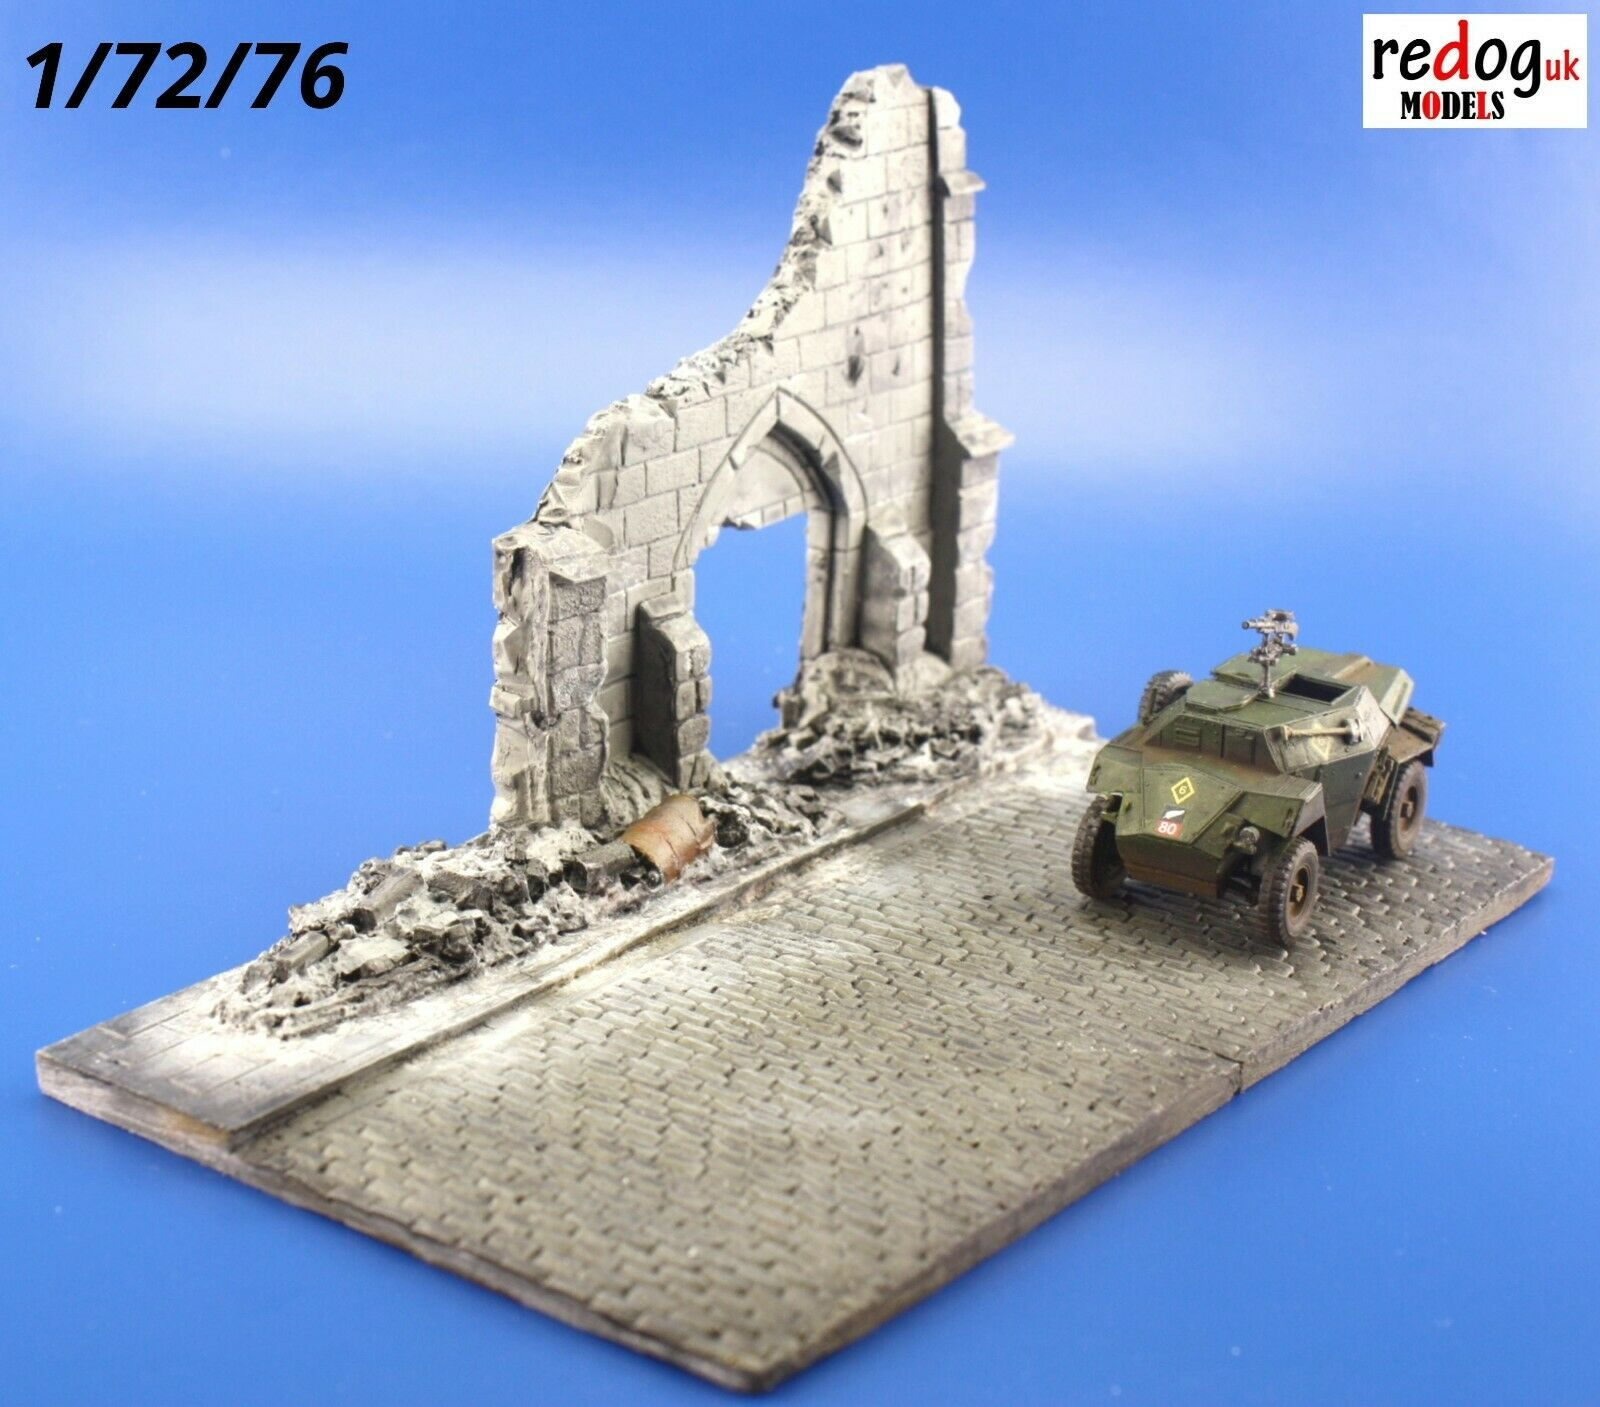 Redog 1/72/76 Ruined Church Street Scale Model Display Base/Small Diorama R3 - redoguk